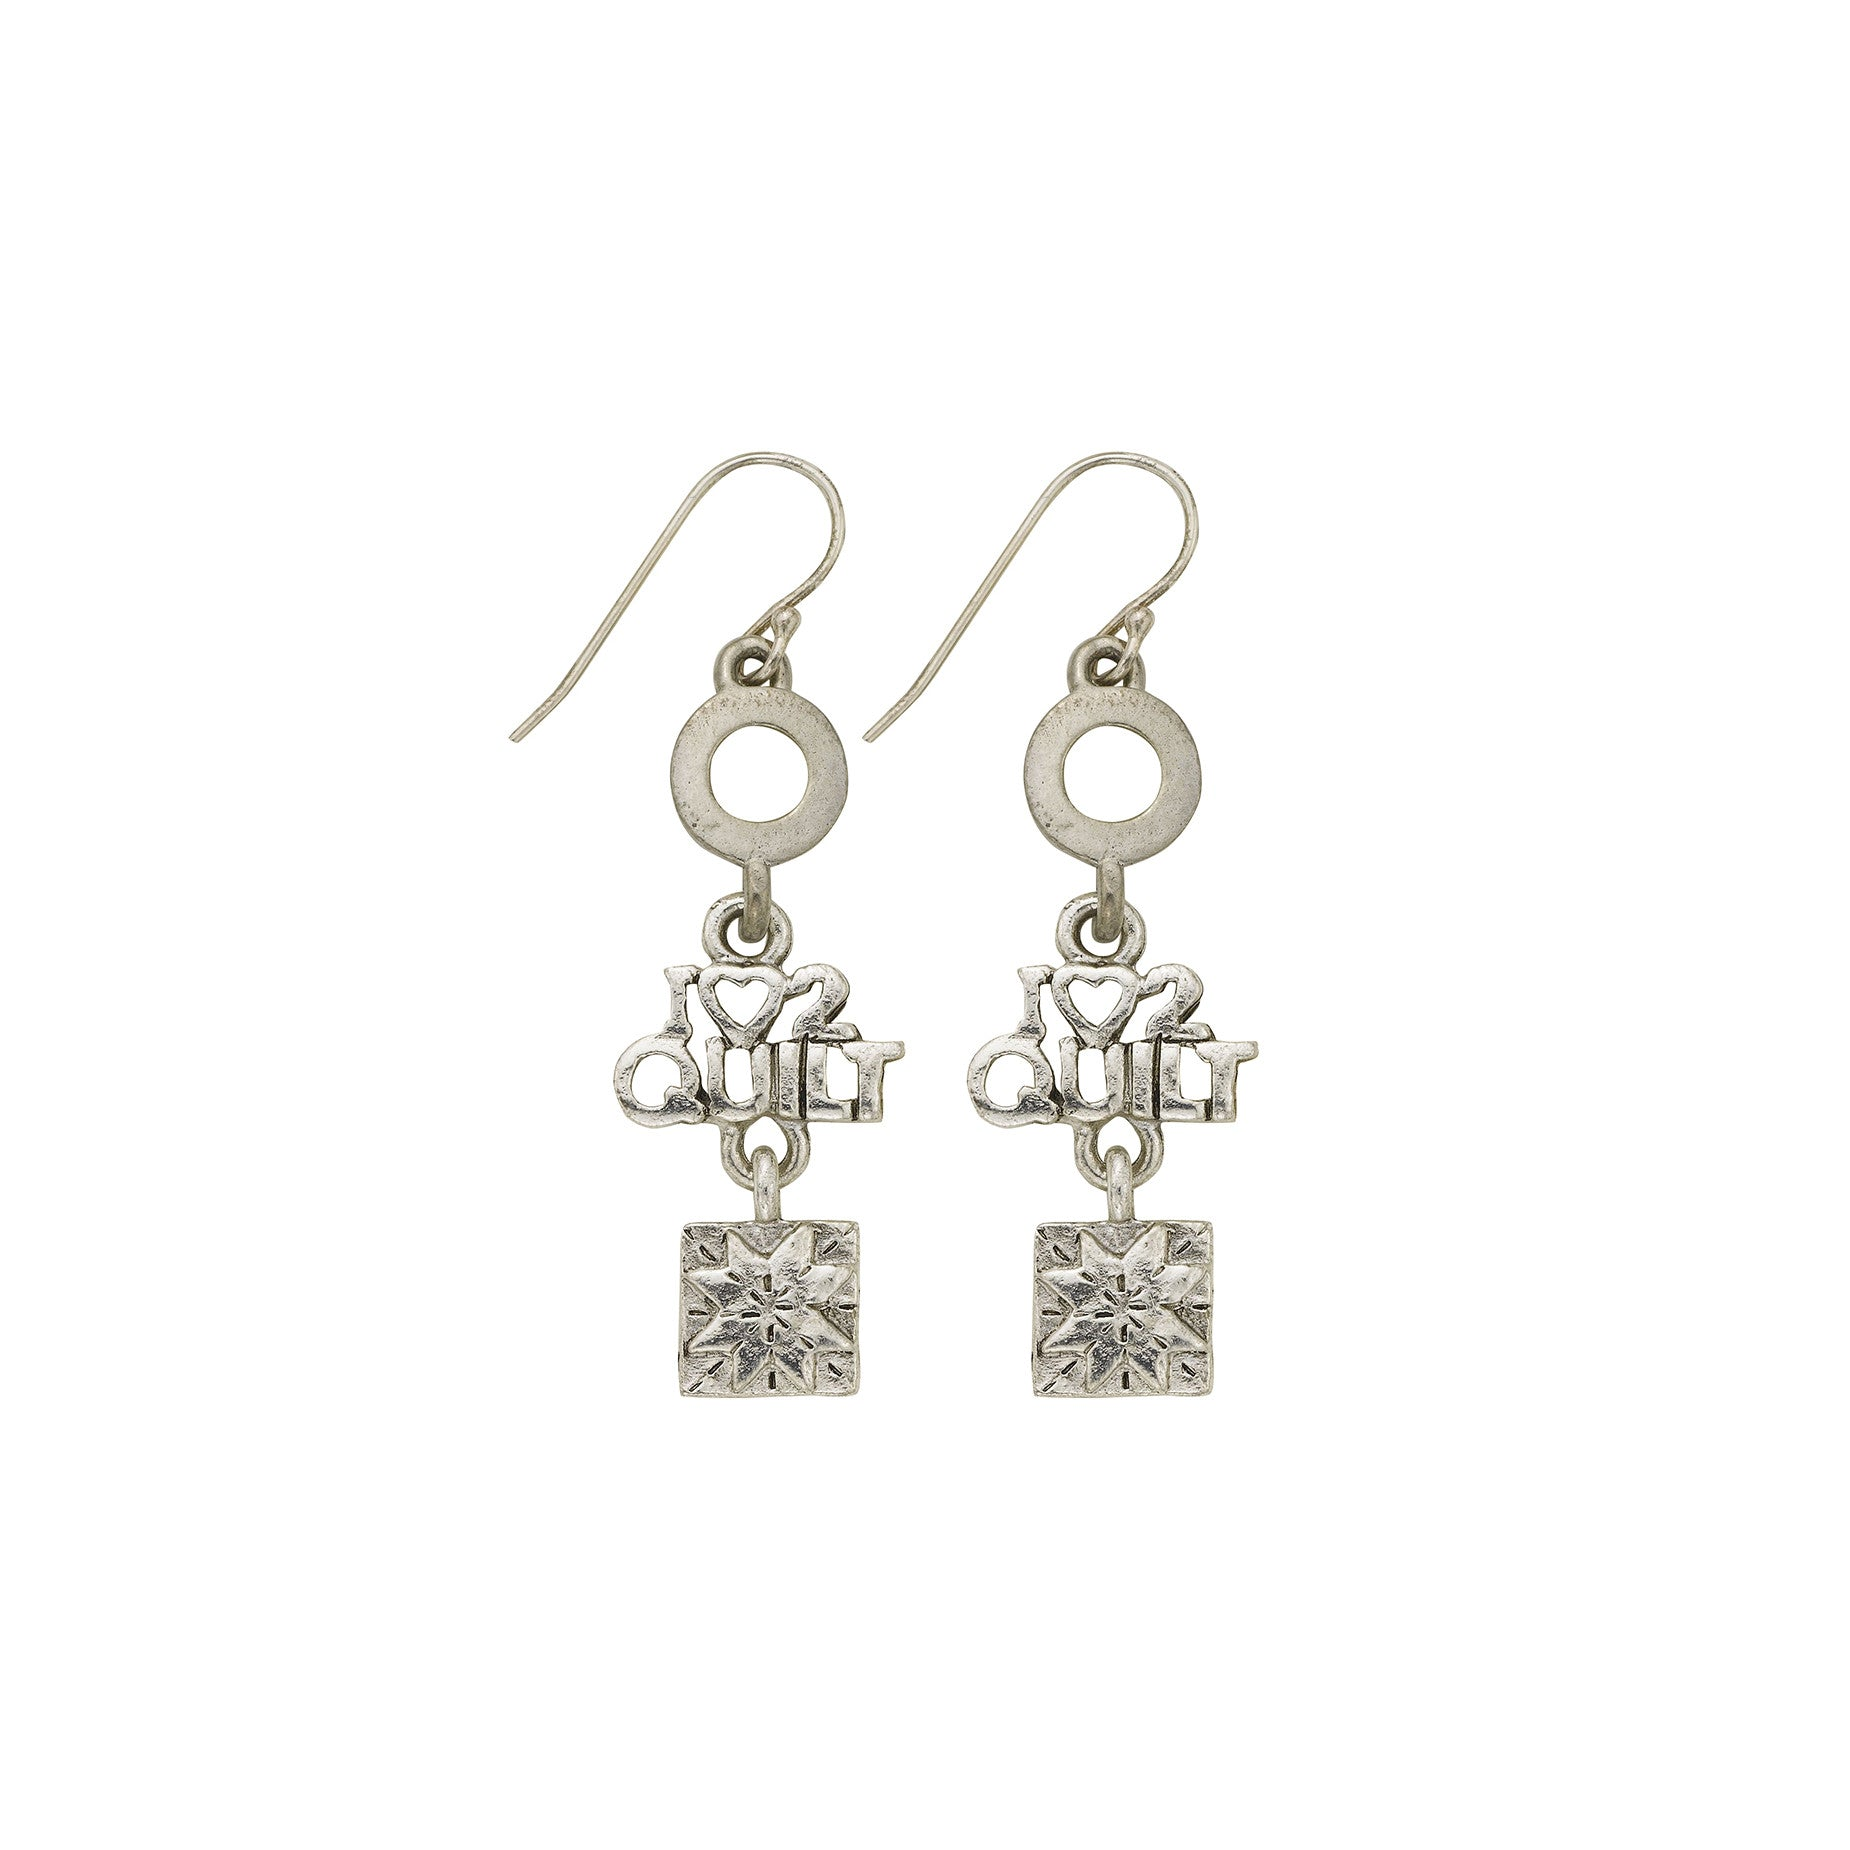 I Love 2 Quilt Earrings - SamandNan